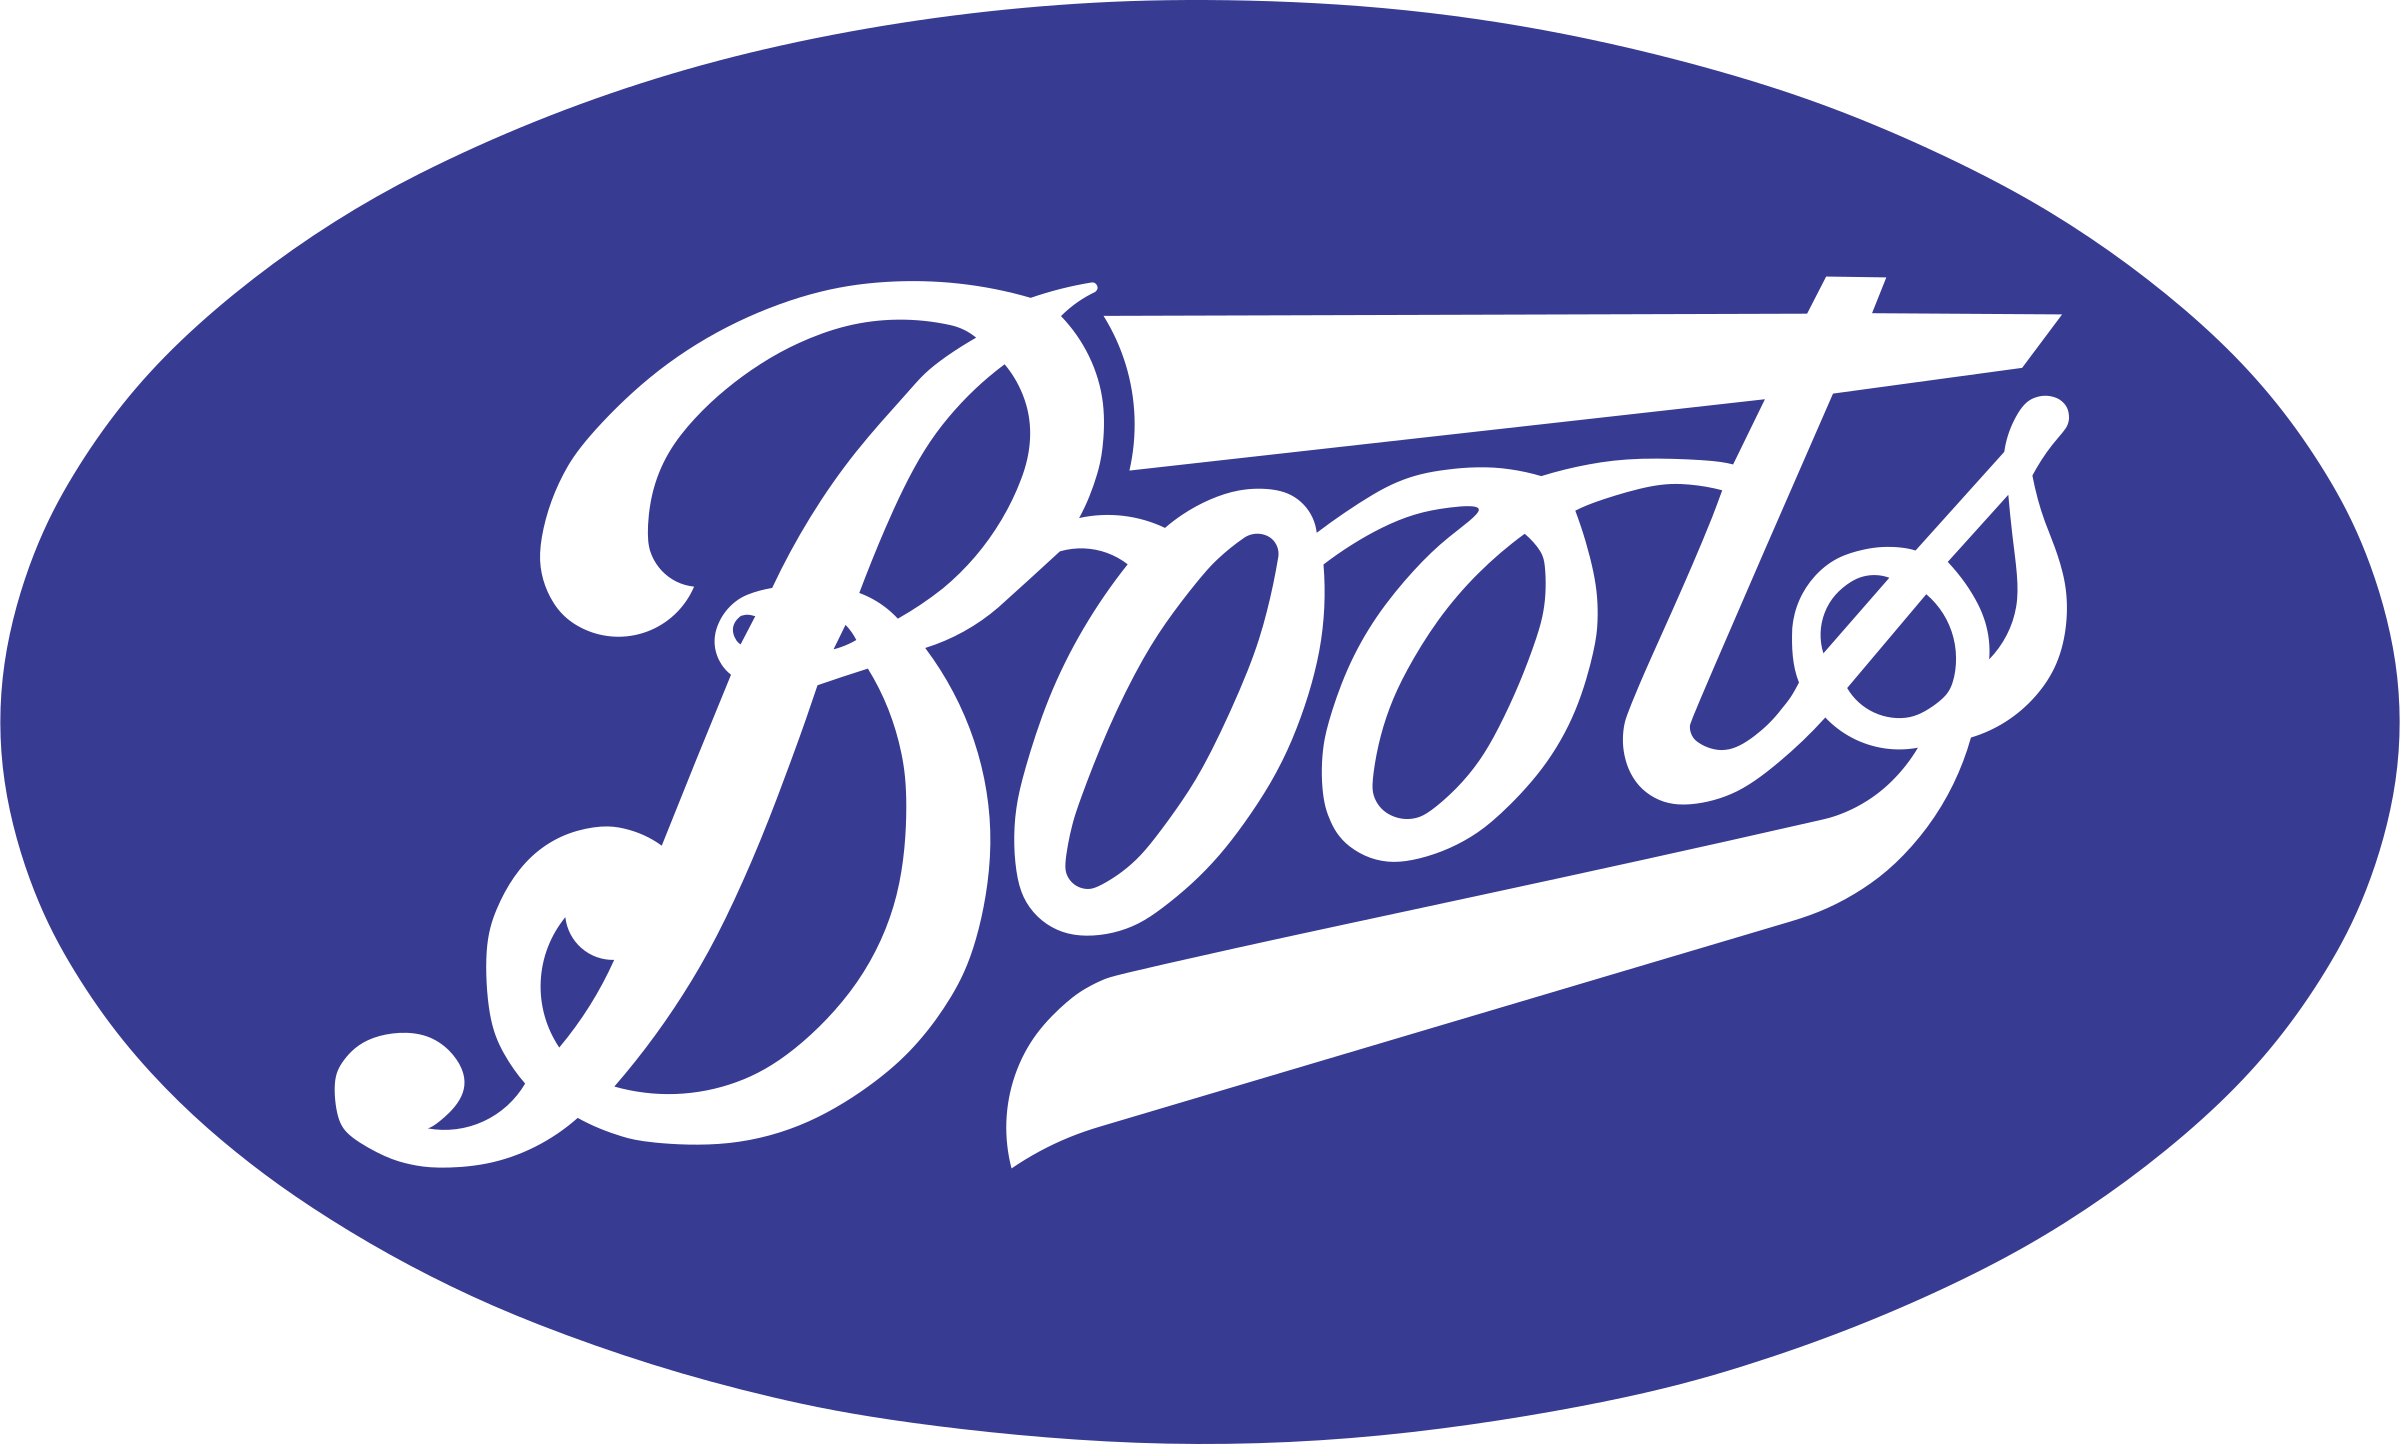 royalty free download Boots Logo PNG Transparent